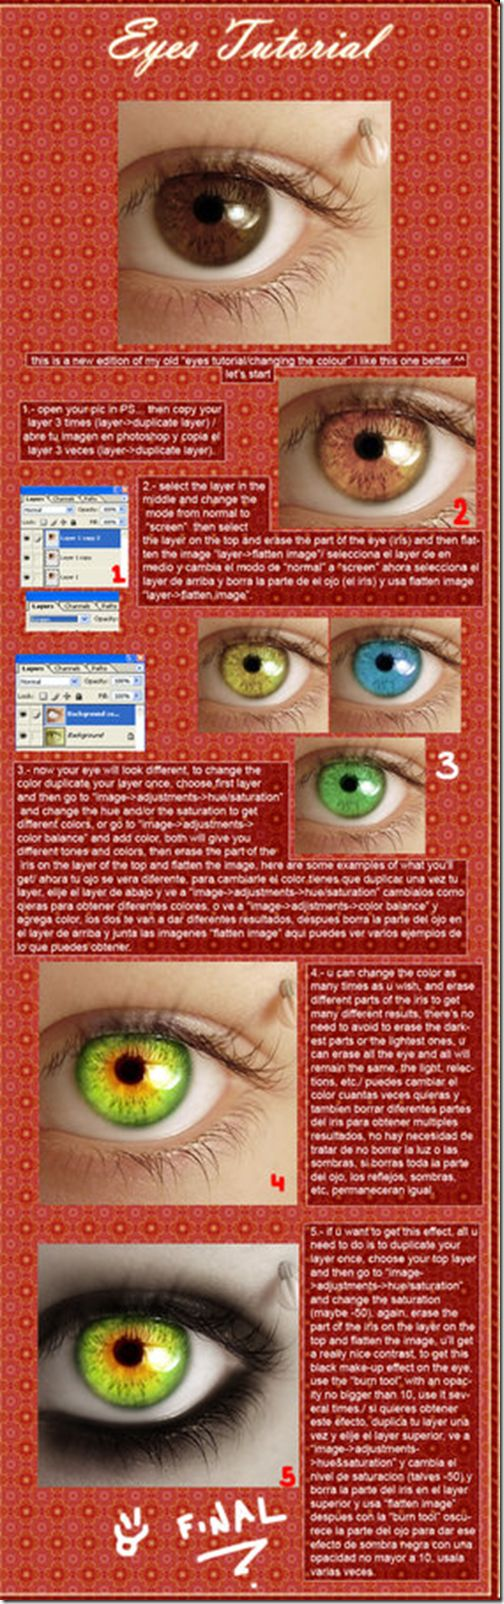 153 best photoshop images on pinterest photo editing 55 best eyes photoshop tutorials photoshop website tutorialsbrushes more baditri Gallery